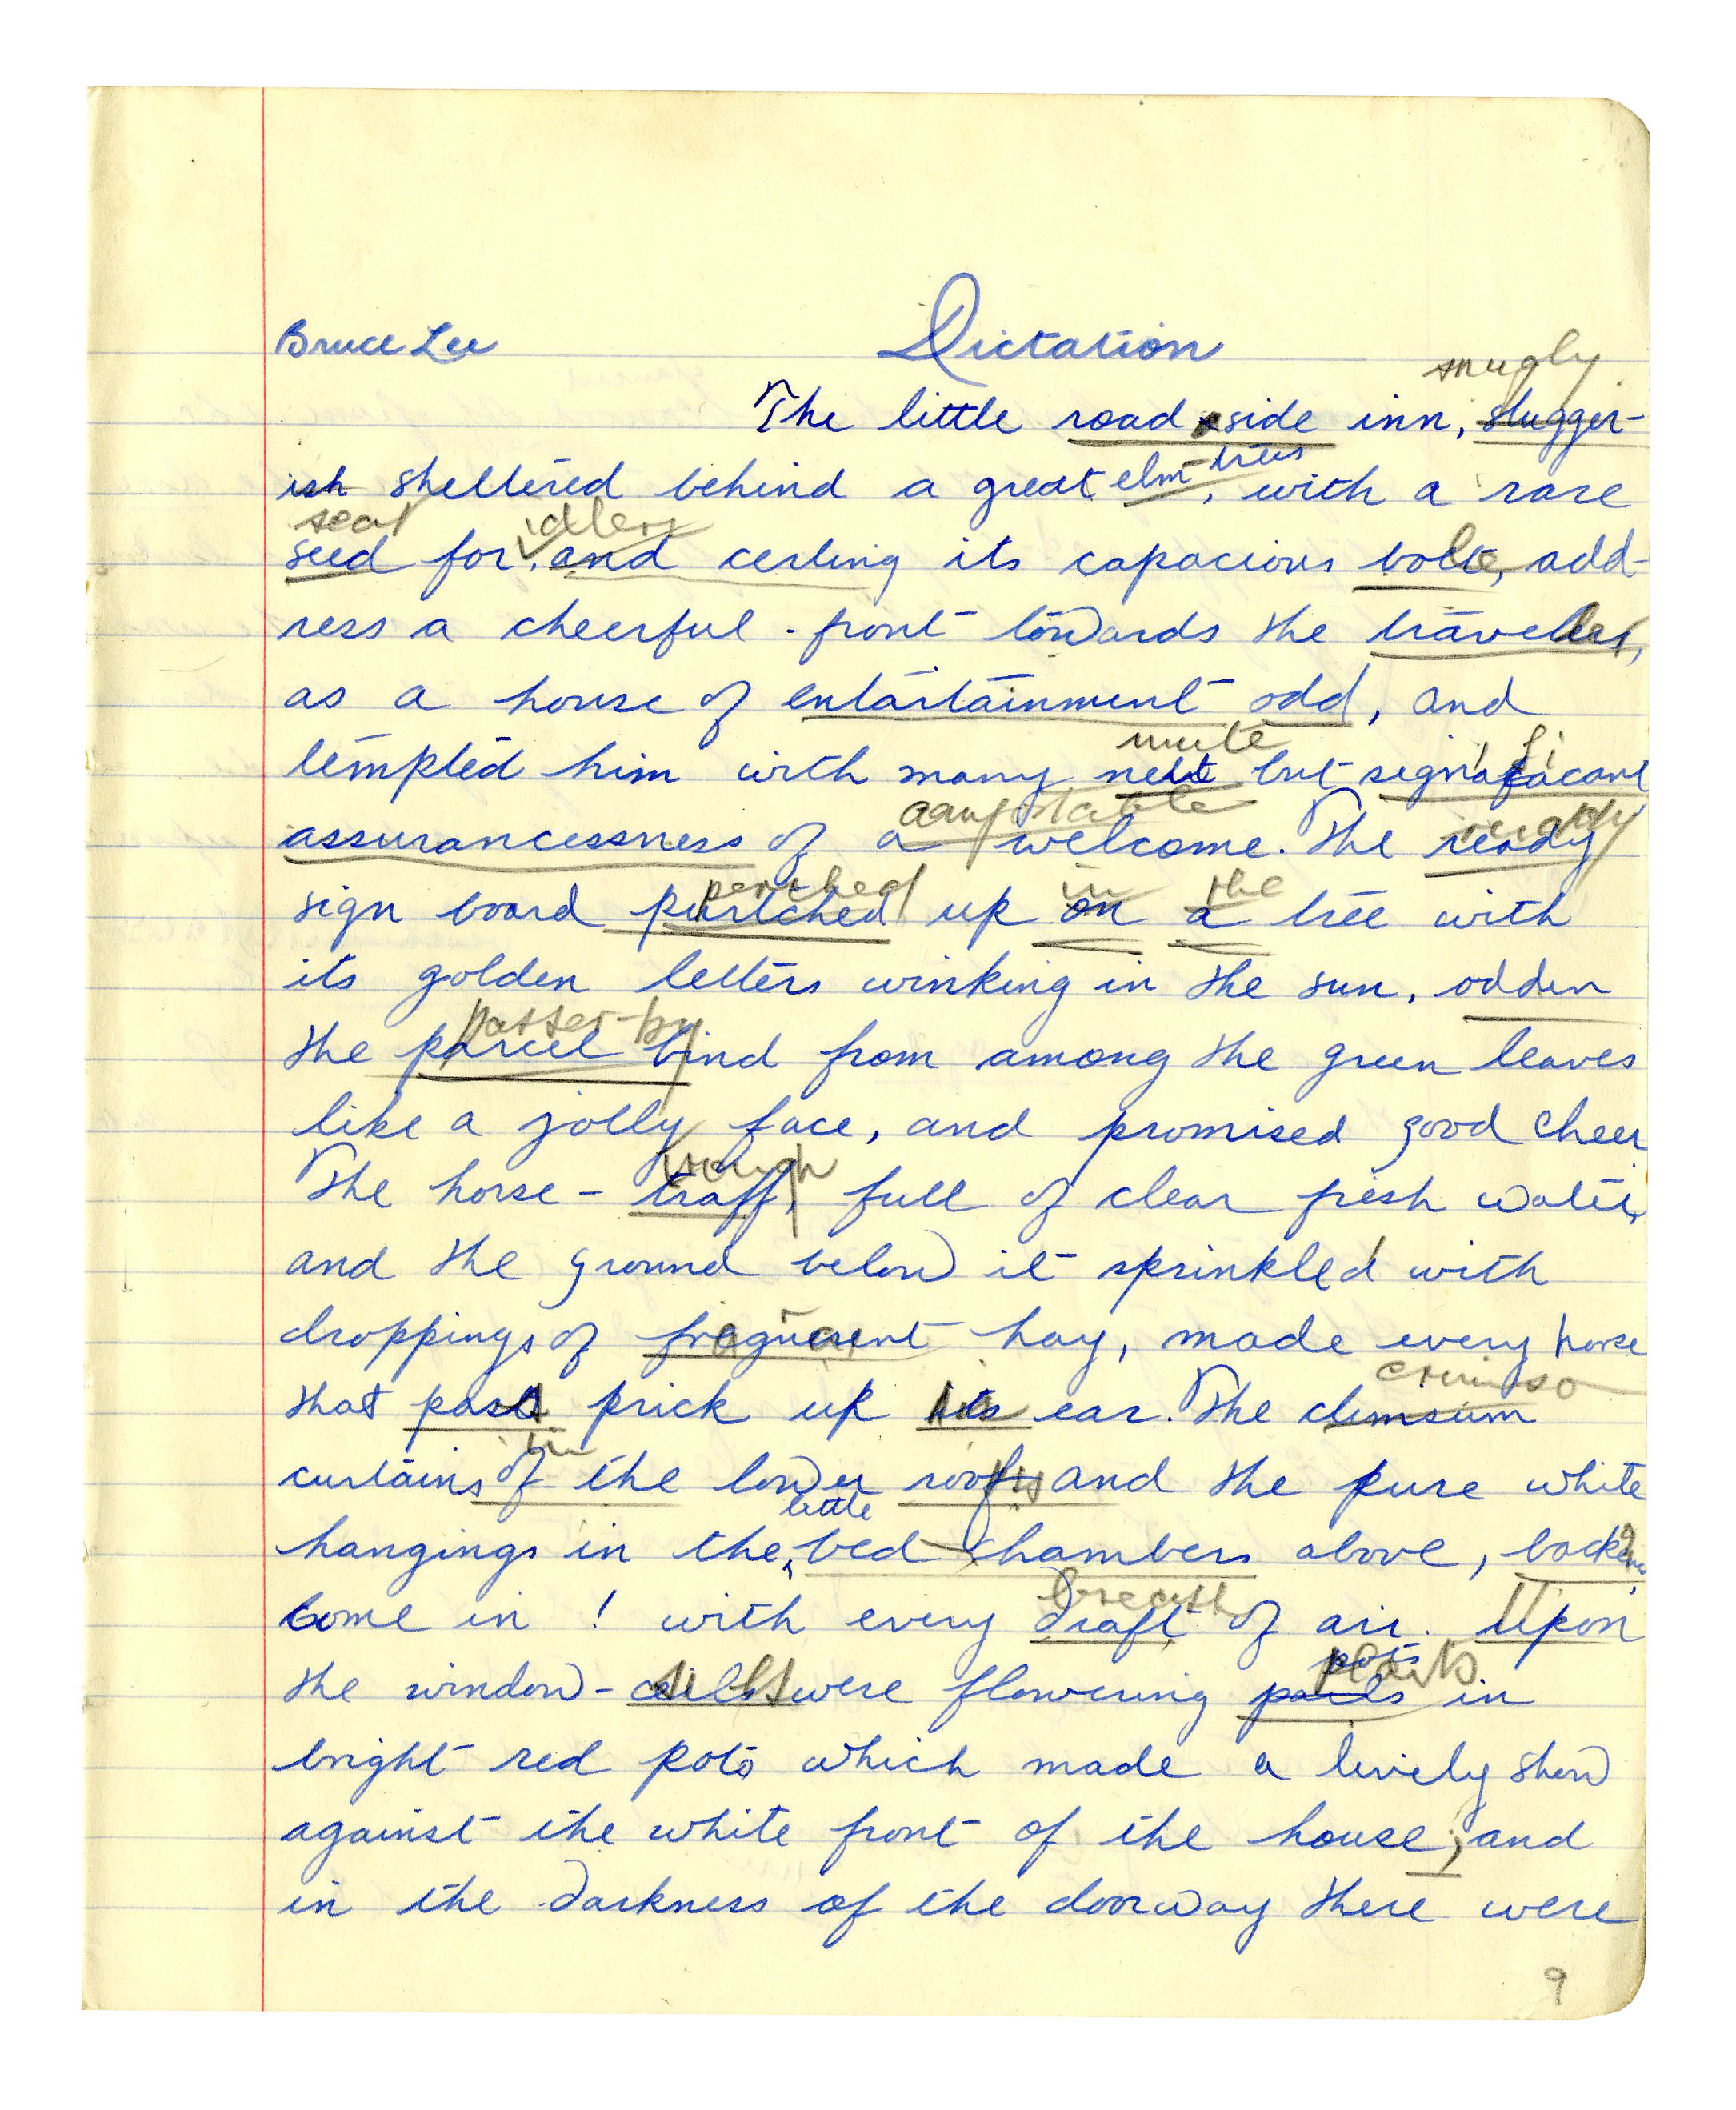 Business Essay Writing  Bruce Lee Signed  Handwritten Essay From High School  The Pure  White Hangings  The Yellow Wallpaper Critical Essay also Narrative Essay Sample Papers Lot Detail  Bruce Lee Signed  Handwritten Essay From High School  Essay Examples For High School Students